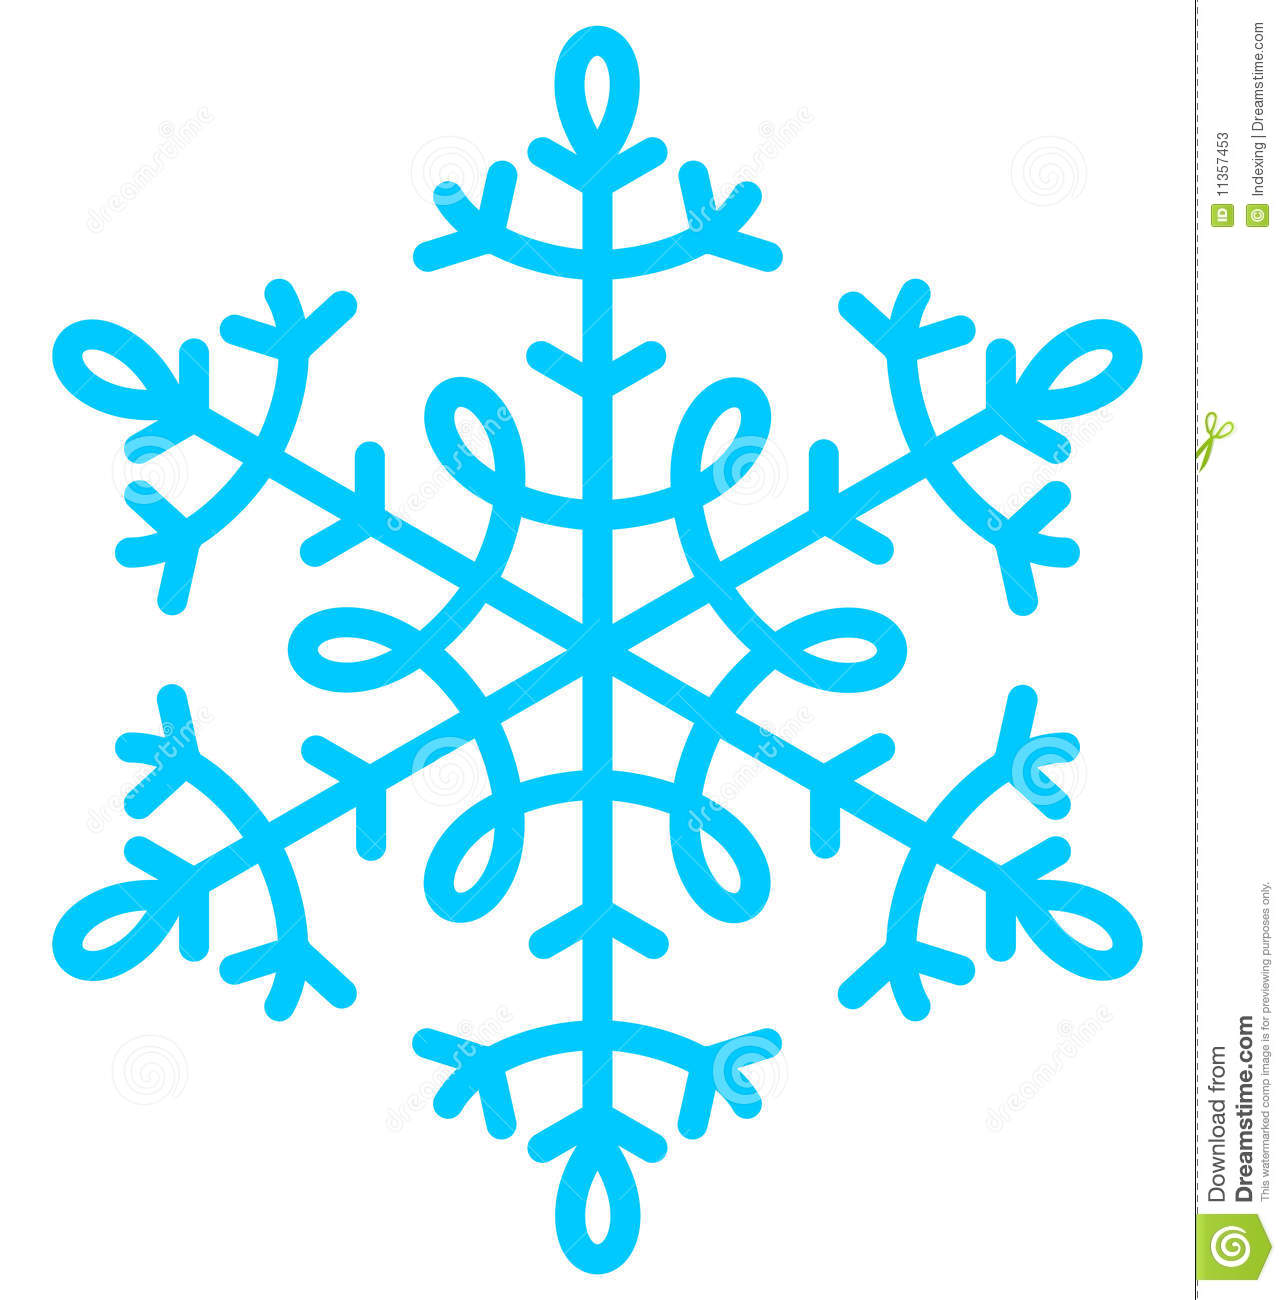 Snowflake blue image for holiday decor and background.